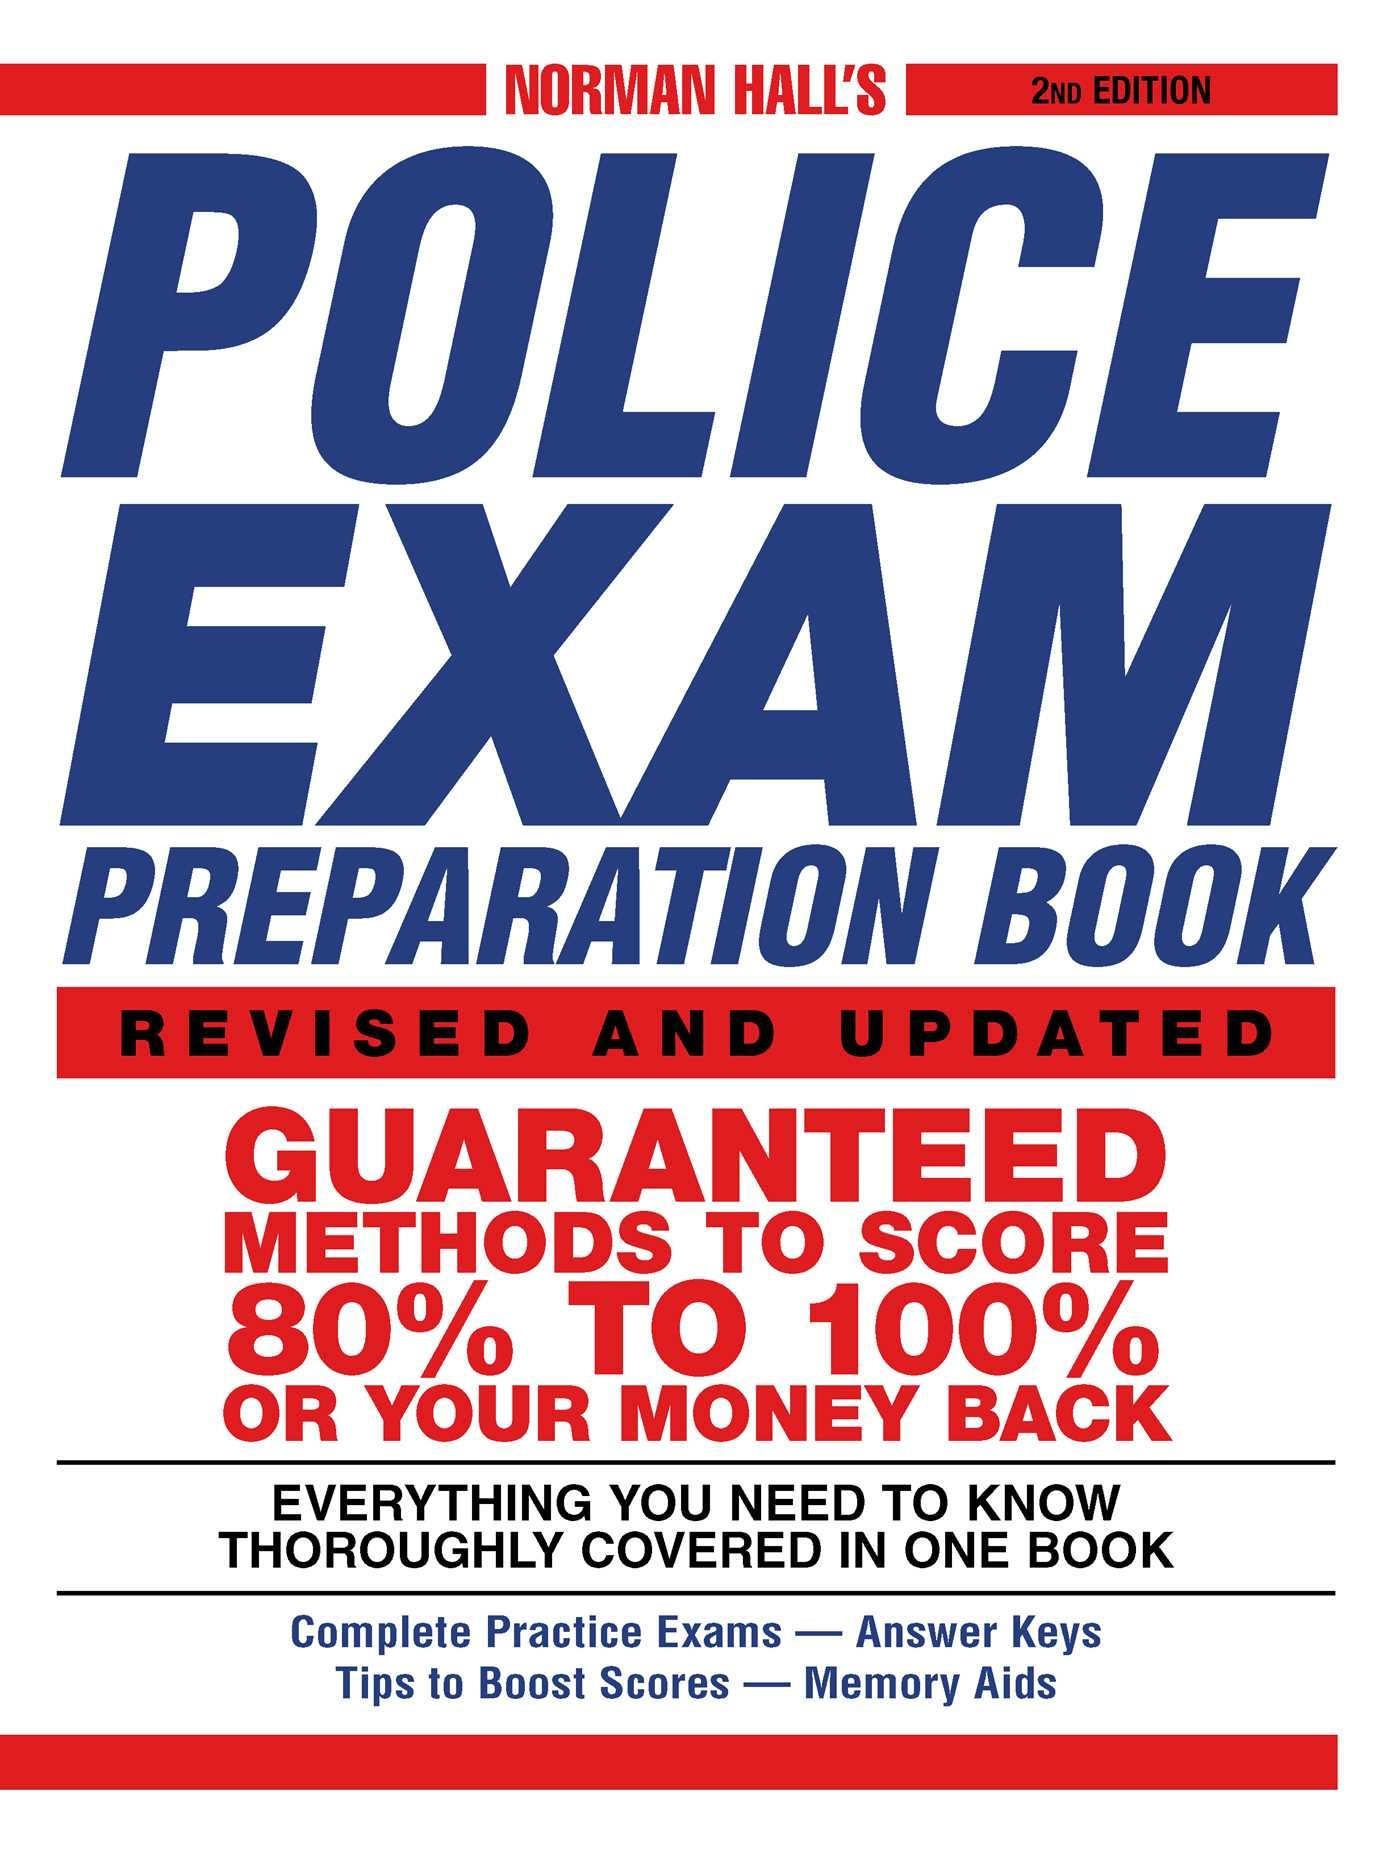 Image OfNorman Hall's Police Exam Preparation Book